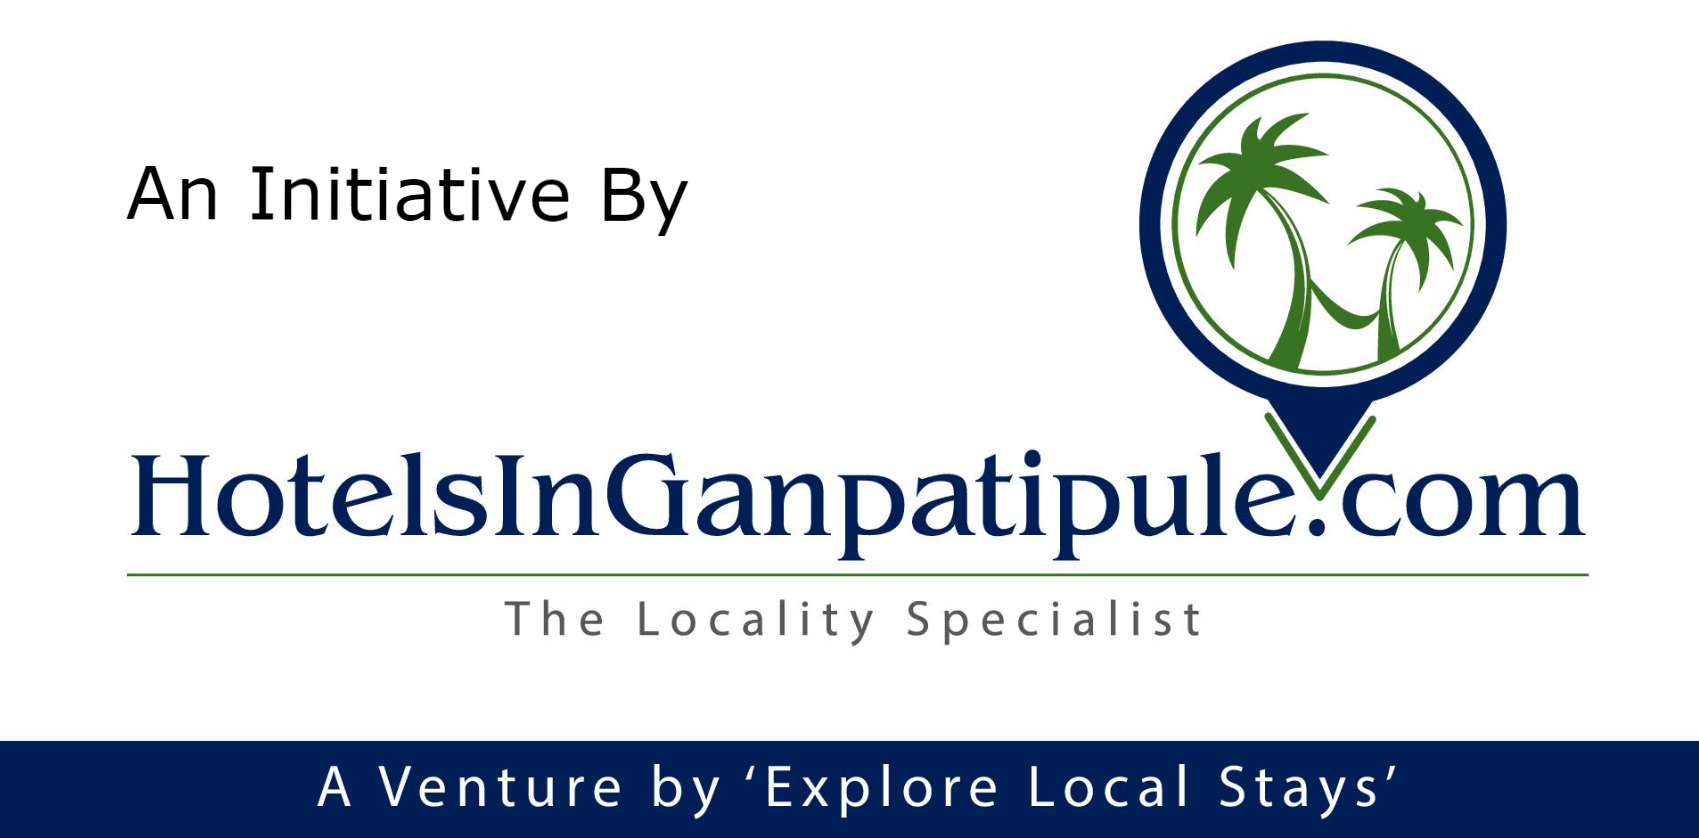 hotels in ganpatipule